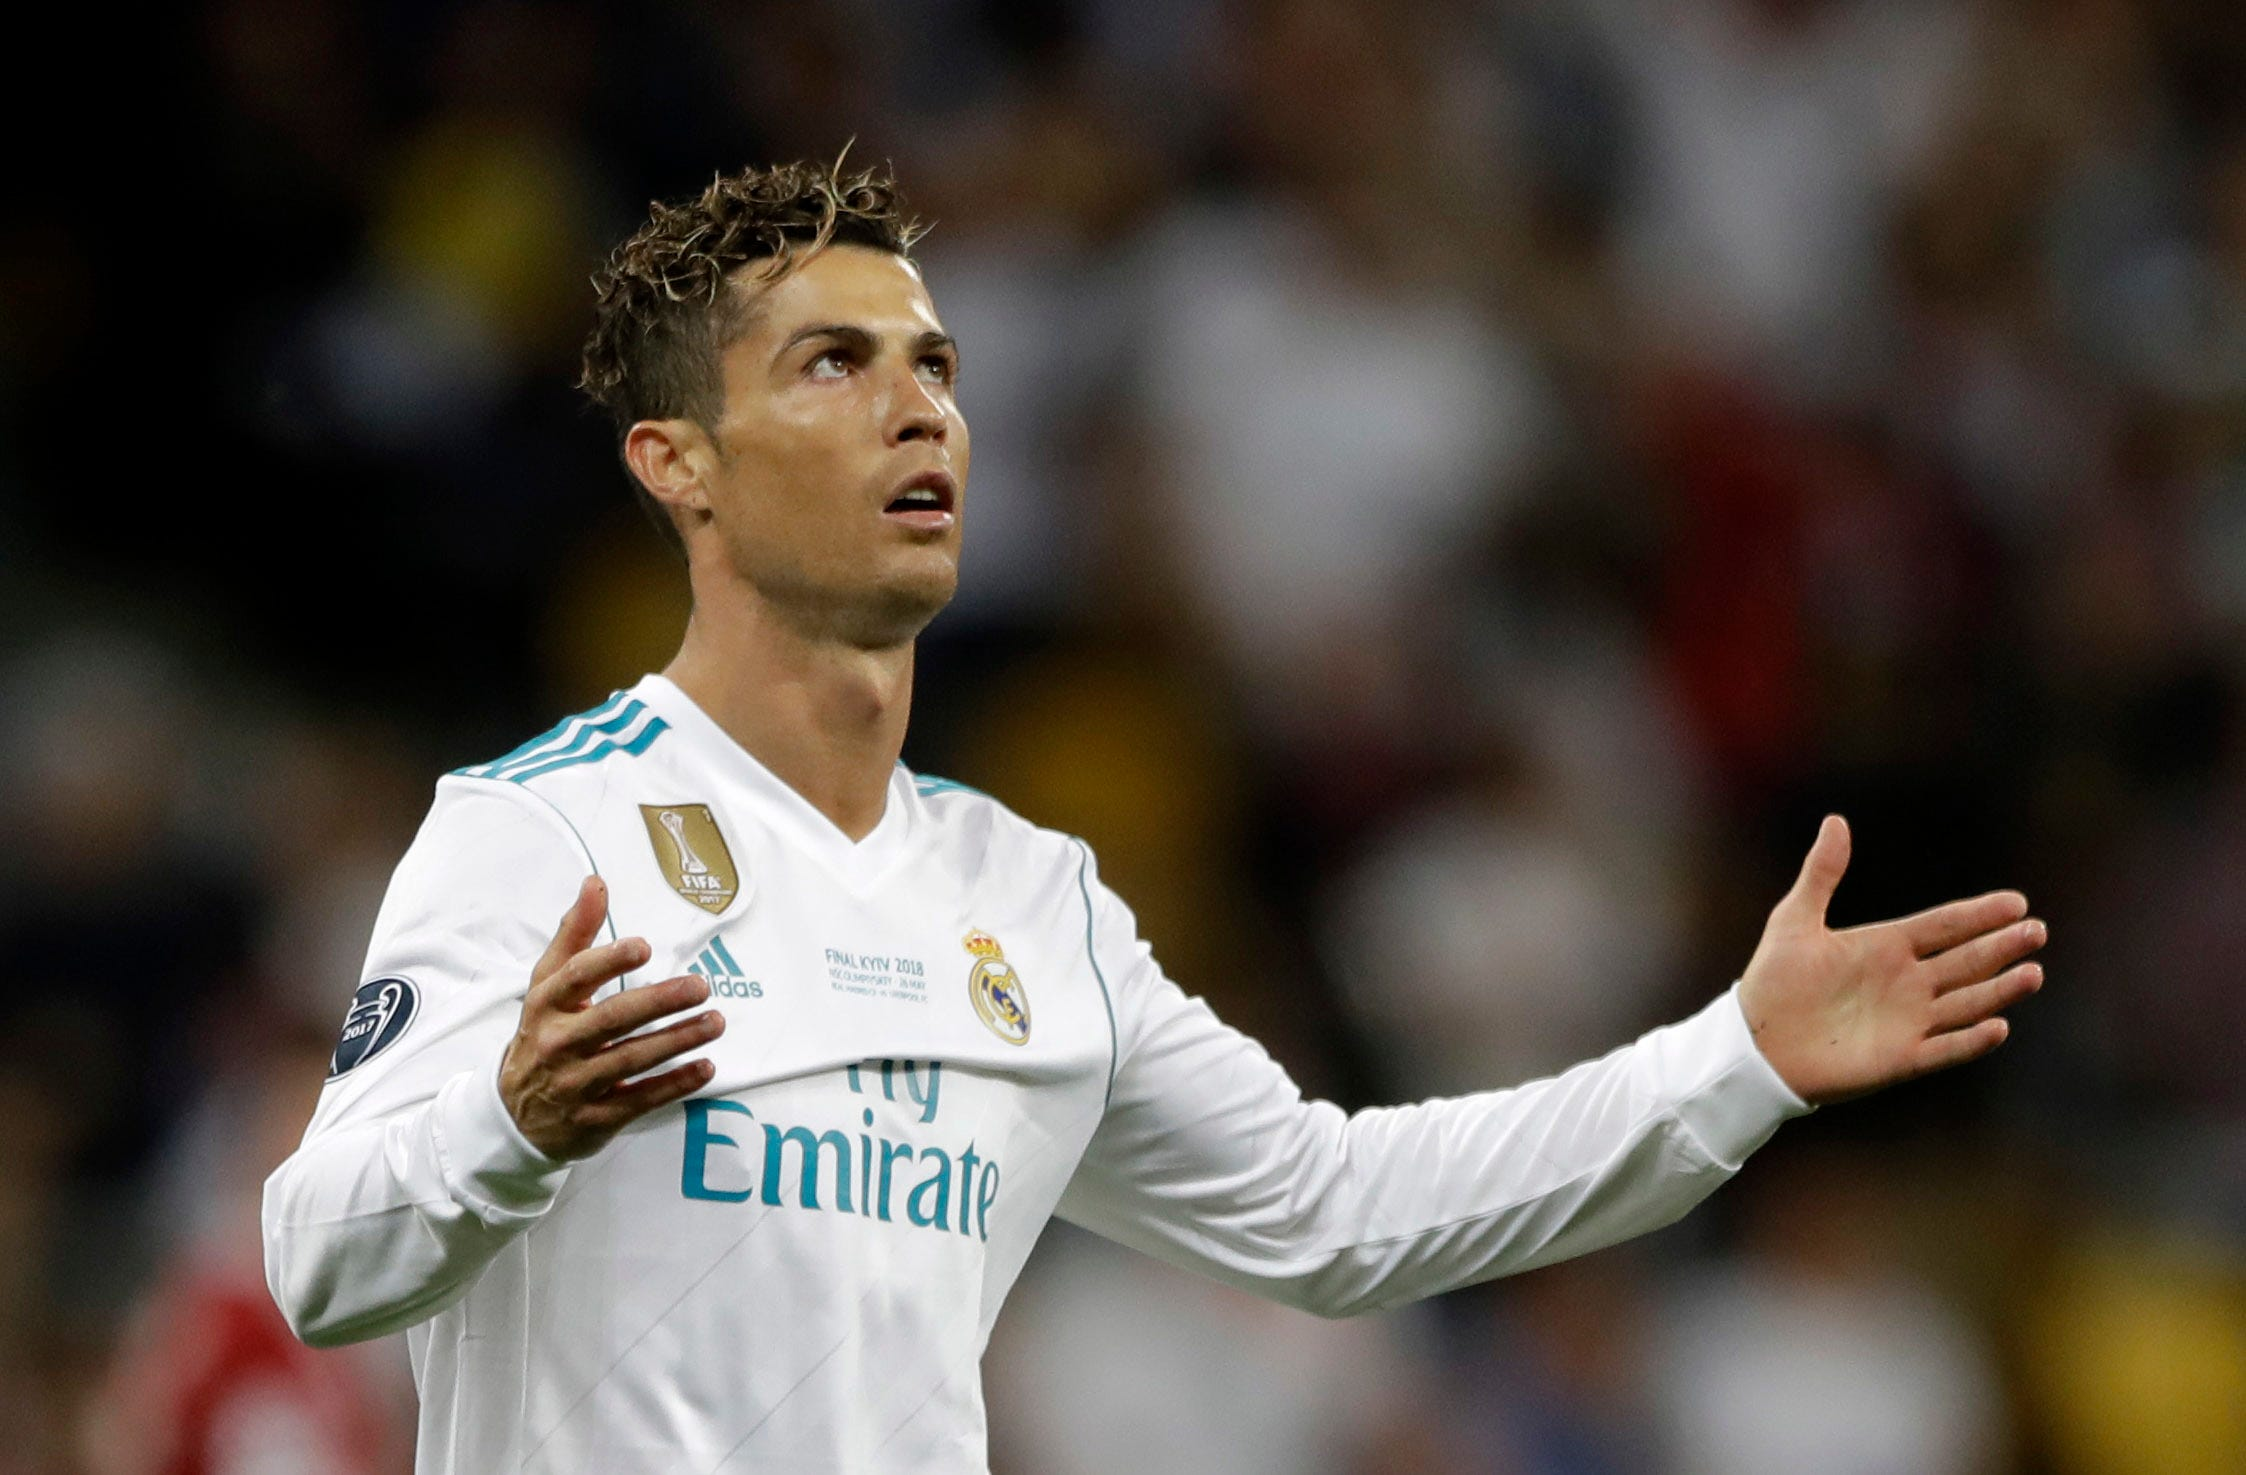 Future unclear for Ronaldo, Bale after Champions League win